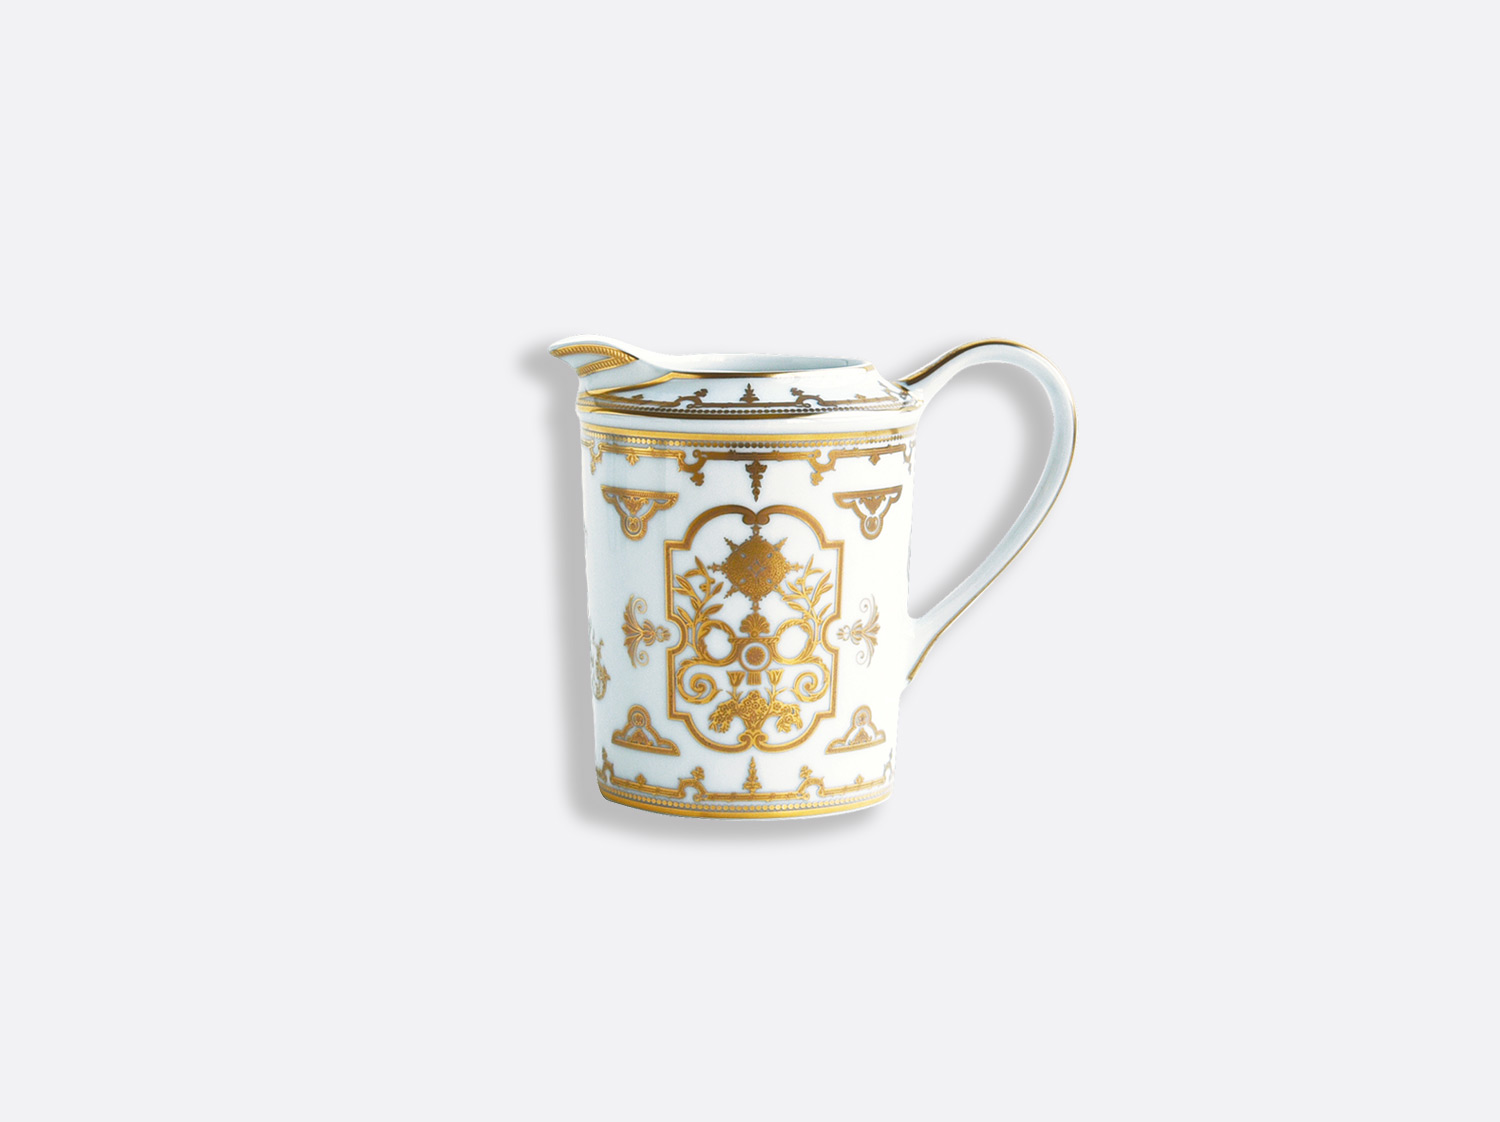 China Creamer 30 cl of the collection Aux Rois Or | Bernardaud